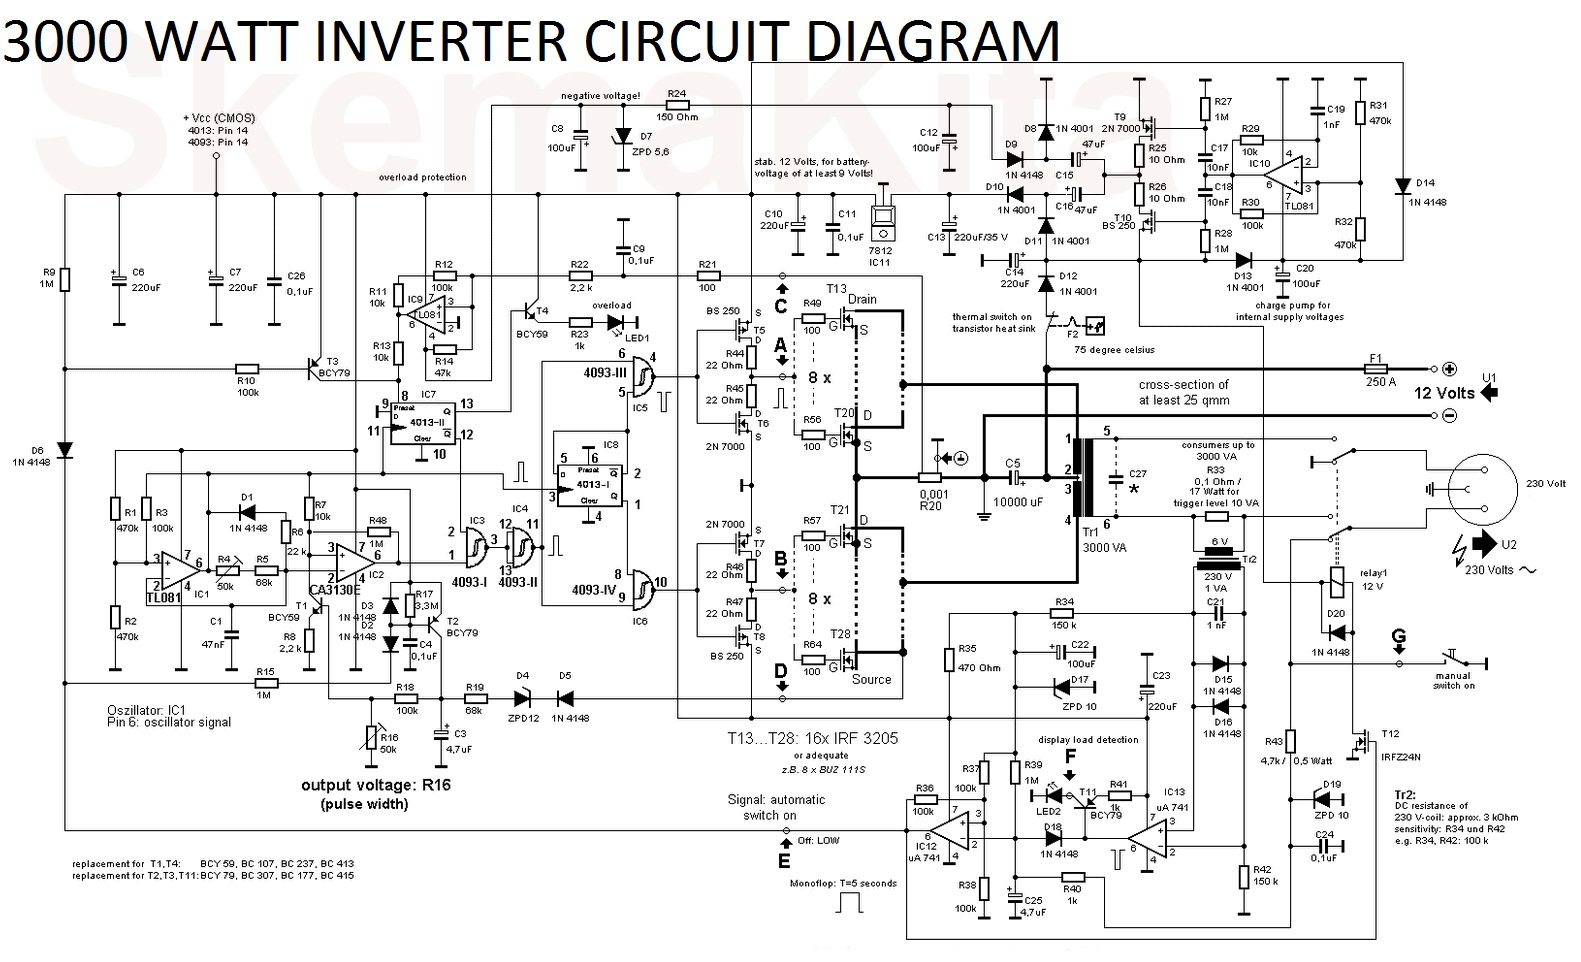 3000 watt inverter circuit diagram electronic circuit rh elcircuit com circuit diagram inverter pure sine wave circuit diagram inverter 1000w